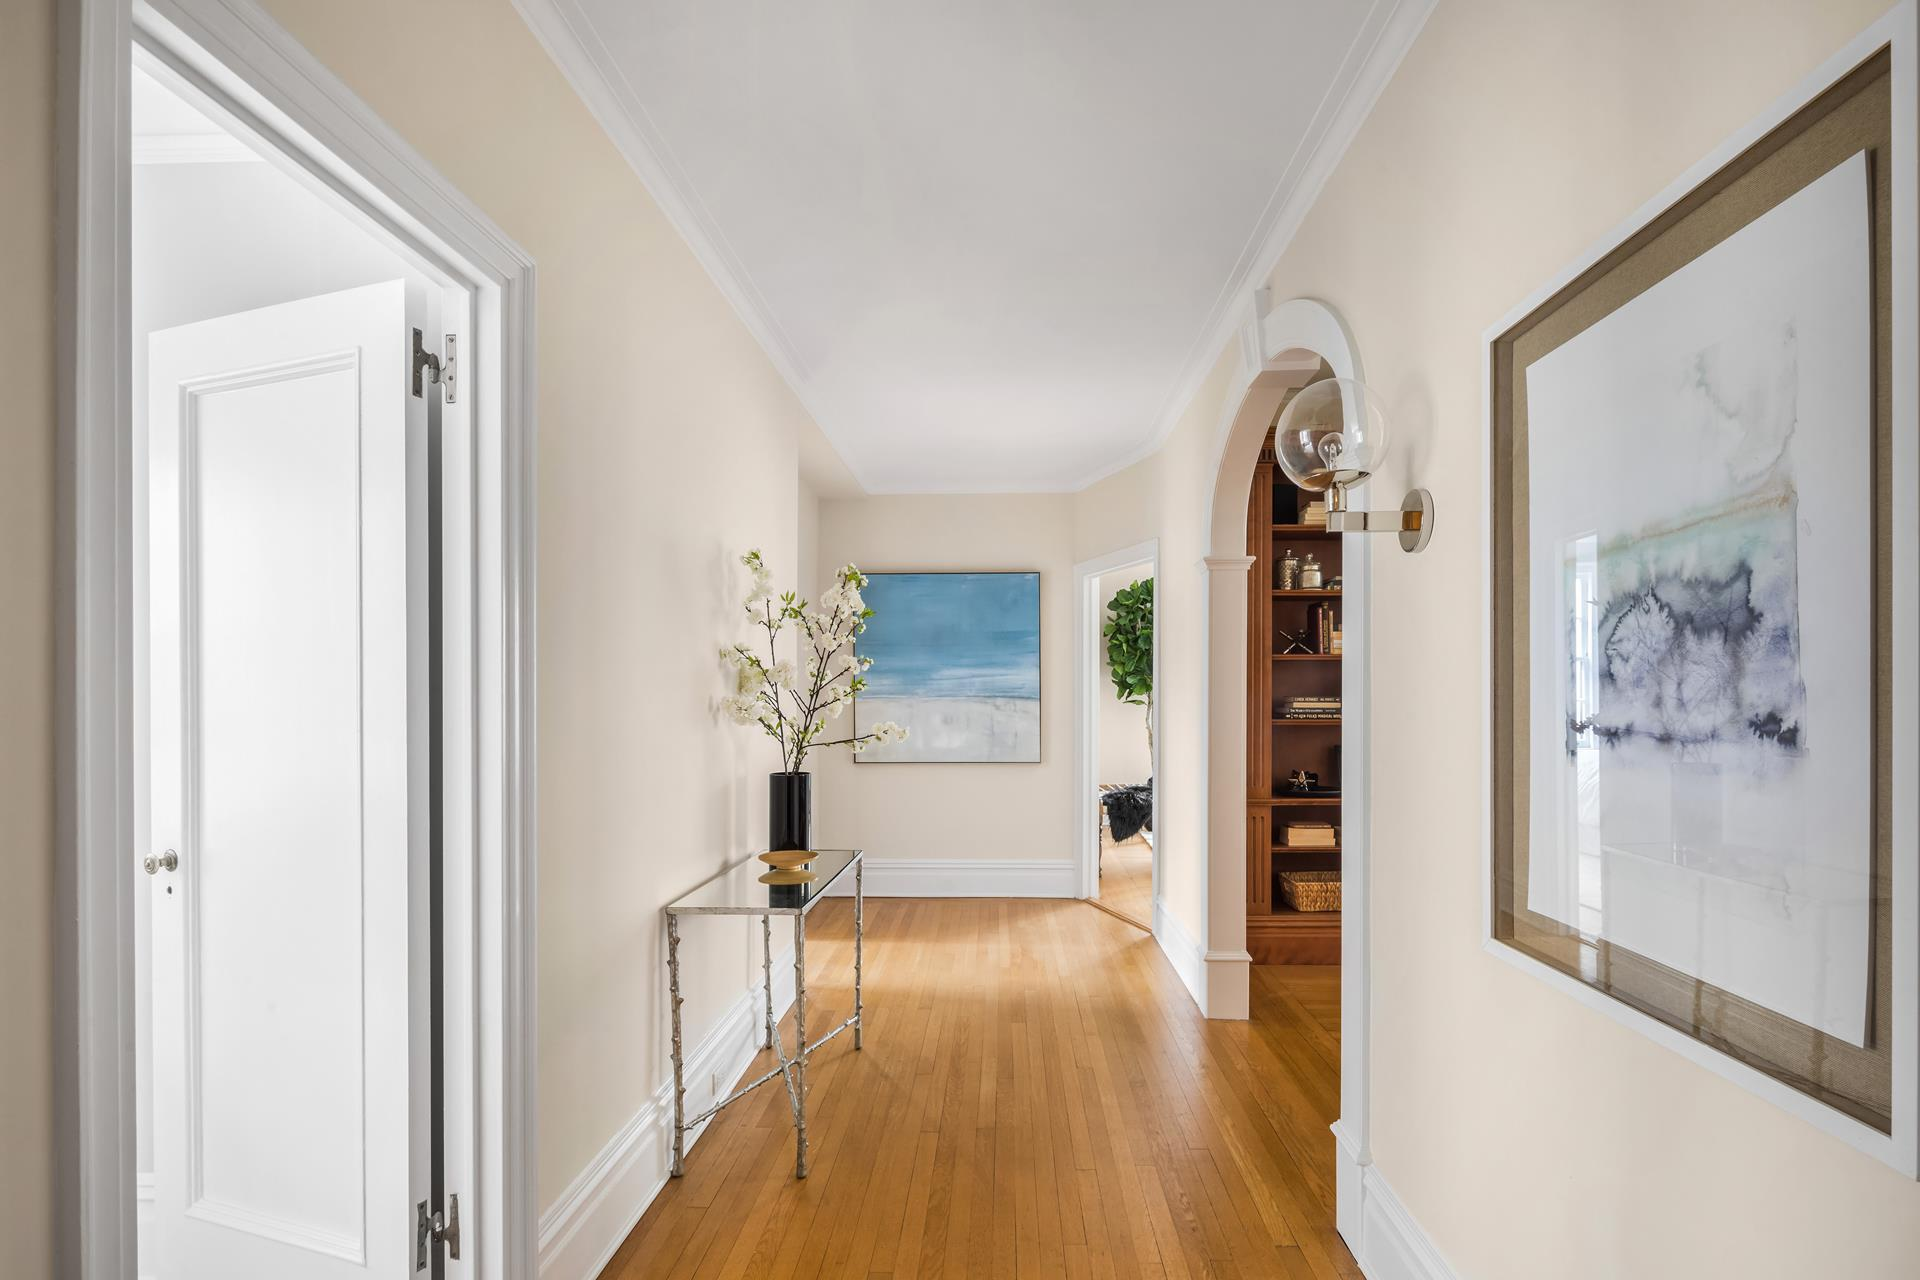 Co-op for Sale at 130 EAST 75TH STREET 130 East 75th St #9E New York, New York,10021 United States